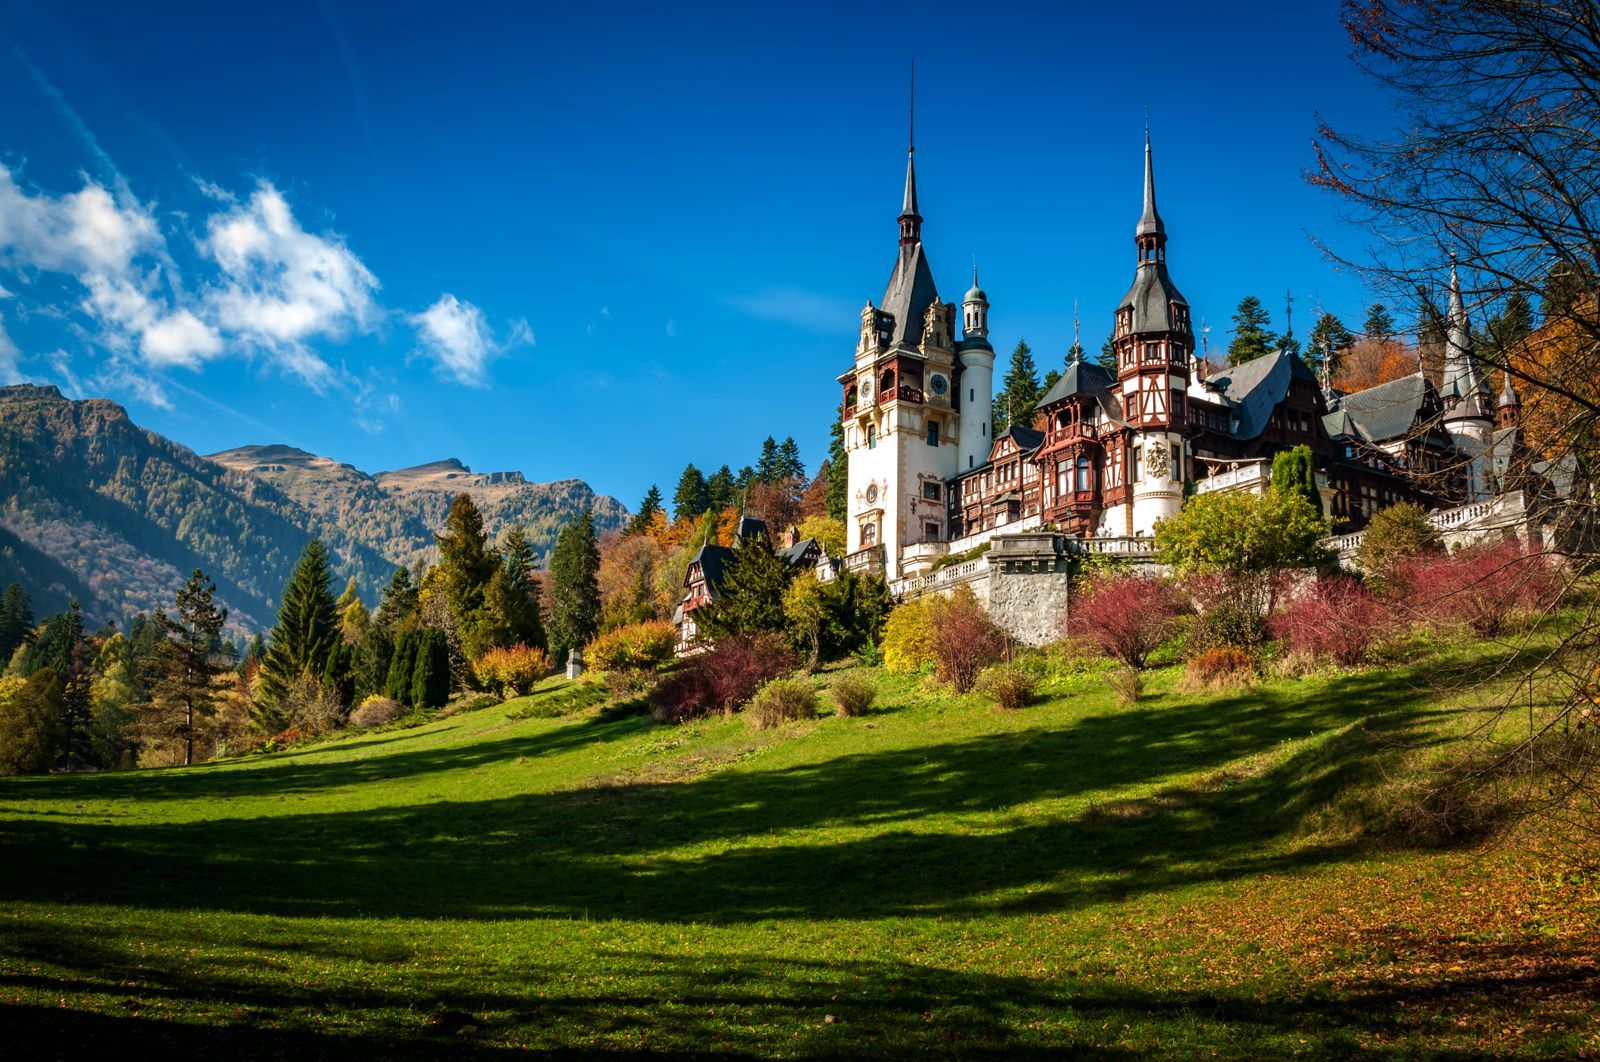 14 gorgeous castles you must see in europe hand luggage only travel food photography blog - Most beautiful manors romania ...